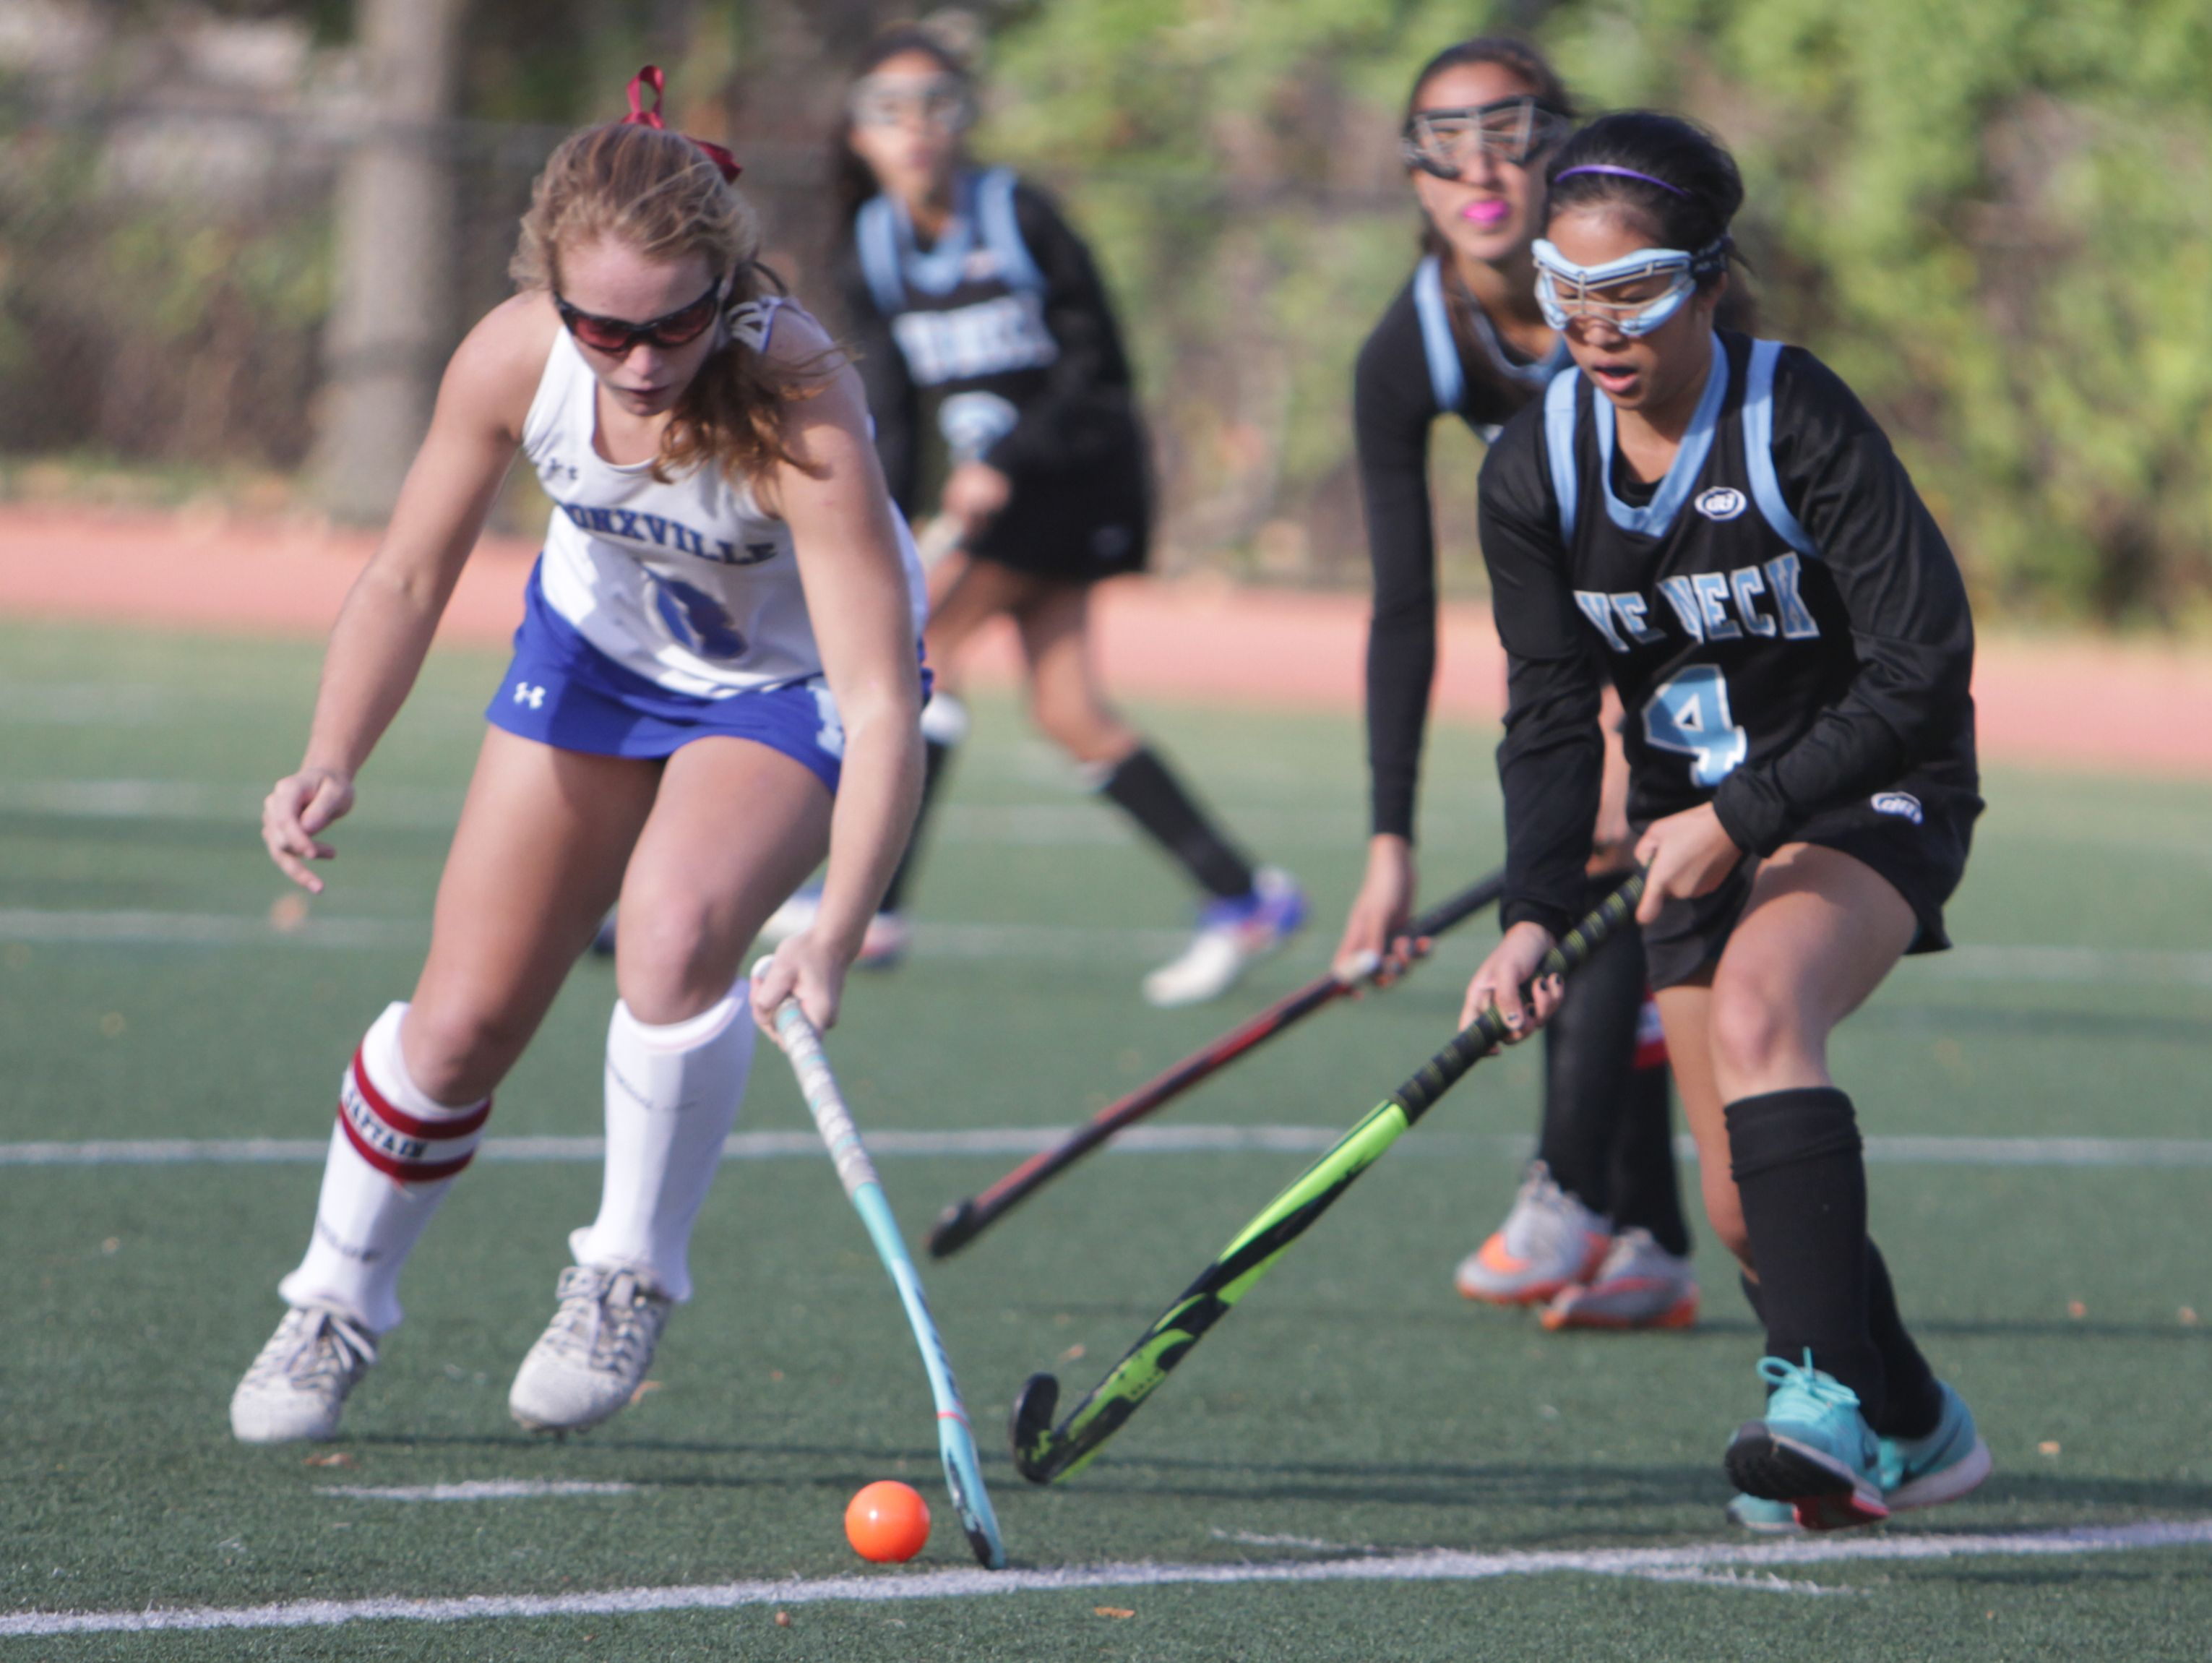 Bronxville's Ellie Walsh and Rye Neck's Catherine Yoo battle for possession of the ball during a Section 1, Class C field hockey game at Bronxville High School on Tuesday, Oct. 25th, 2016.